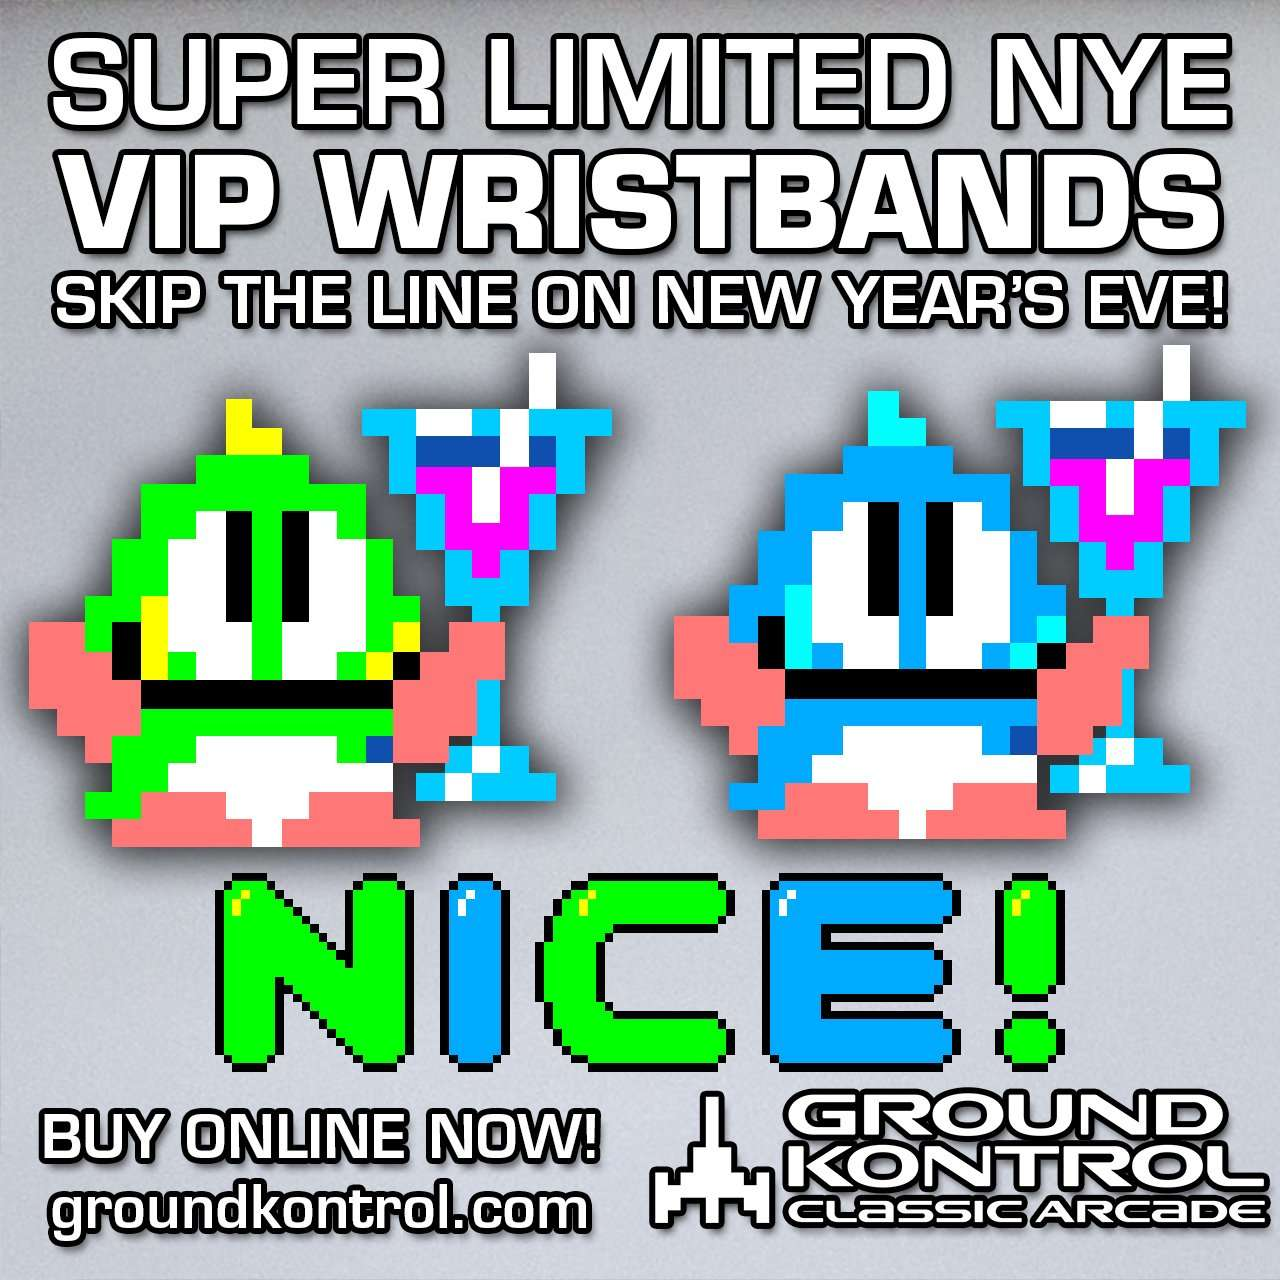 Now Available: New Year's Eve 2016 VIP Wristbands – While They Last!